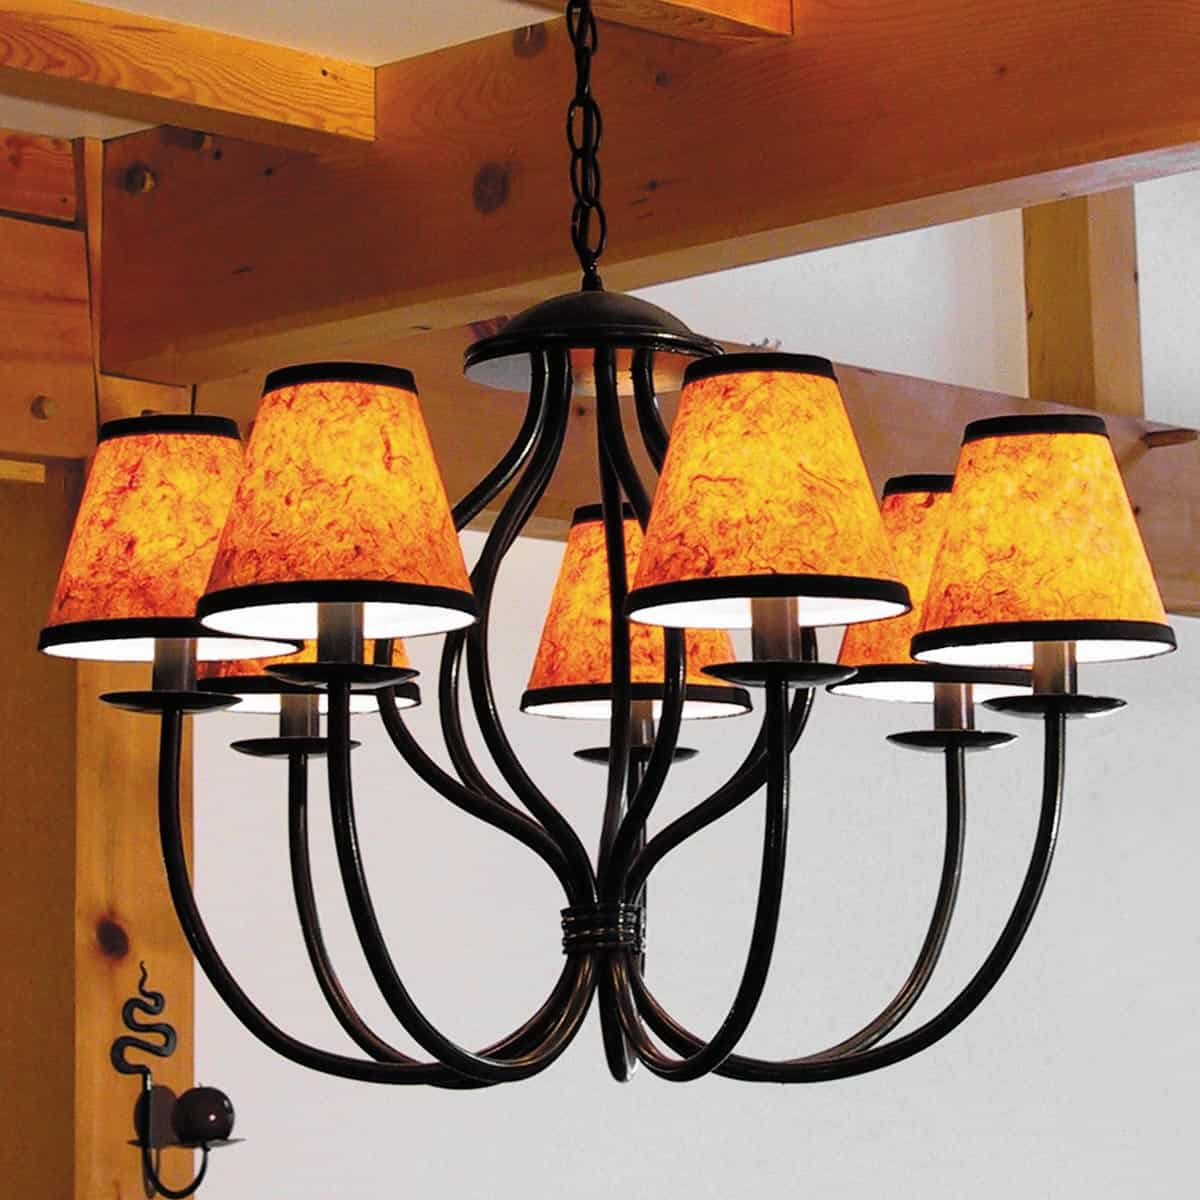 SC-02 Chandelier Lampshade – Amber